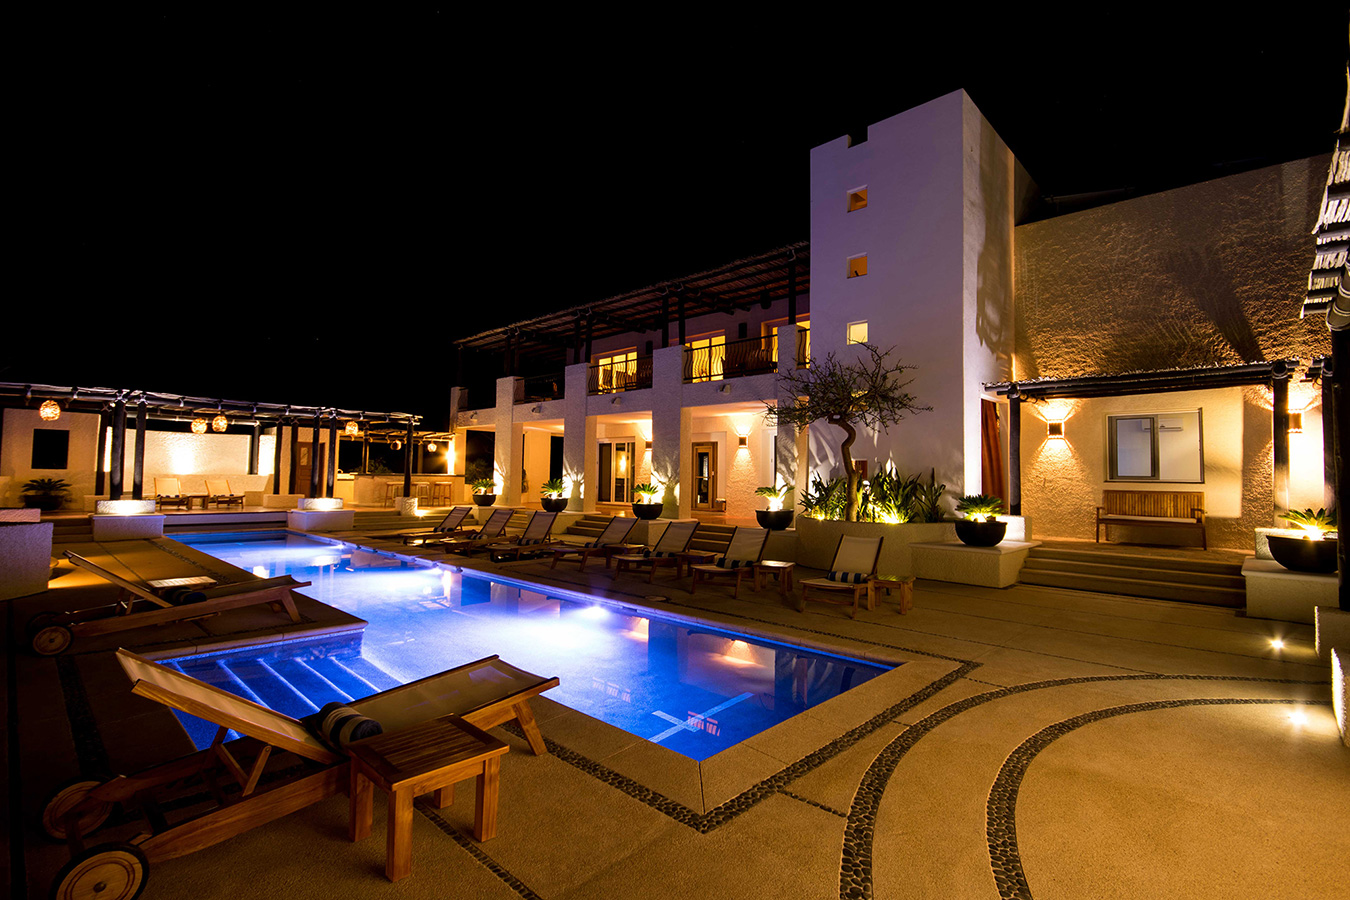 All Lit up at Night - Yoga Retreat - Mexico